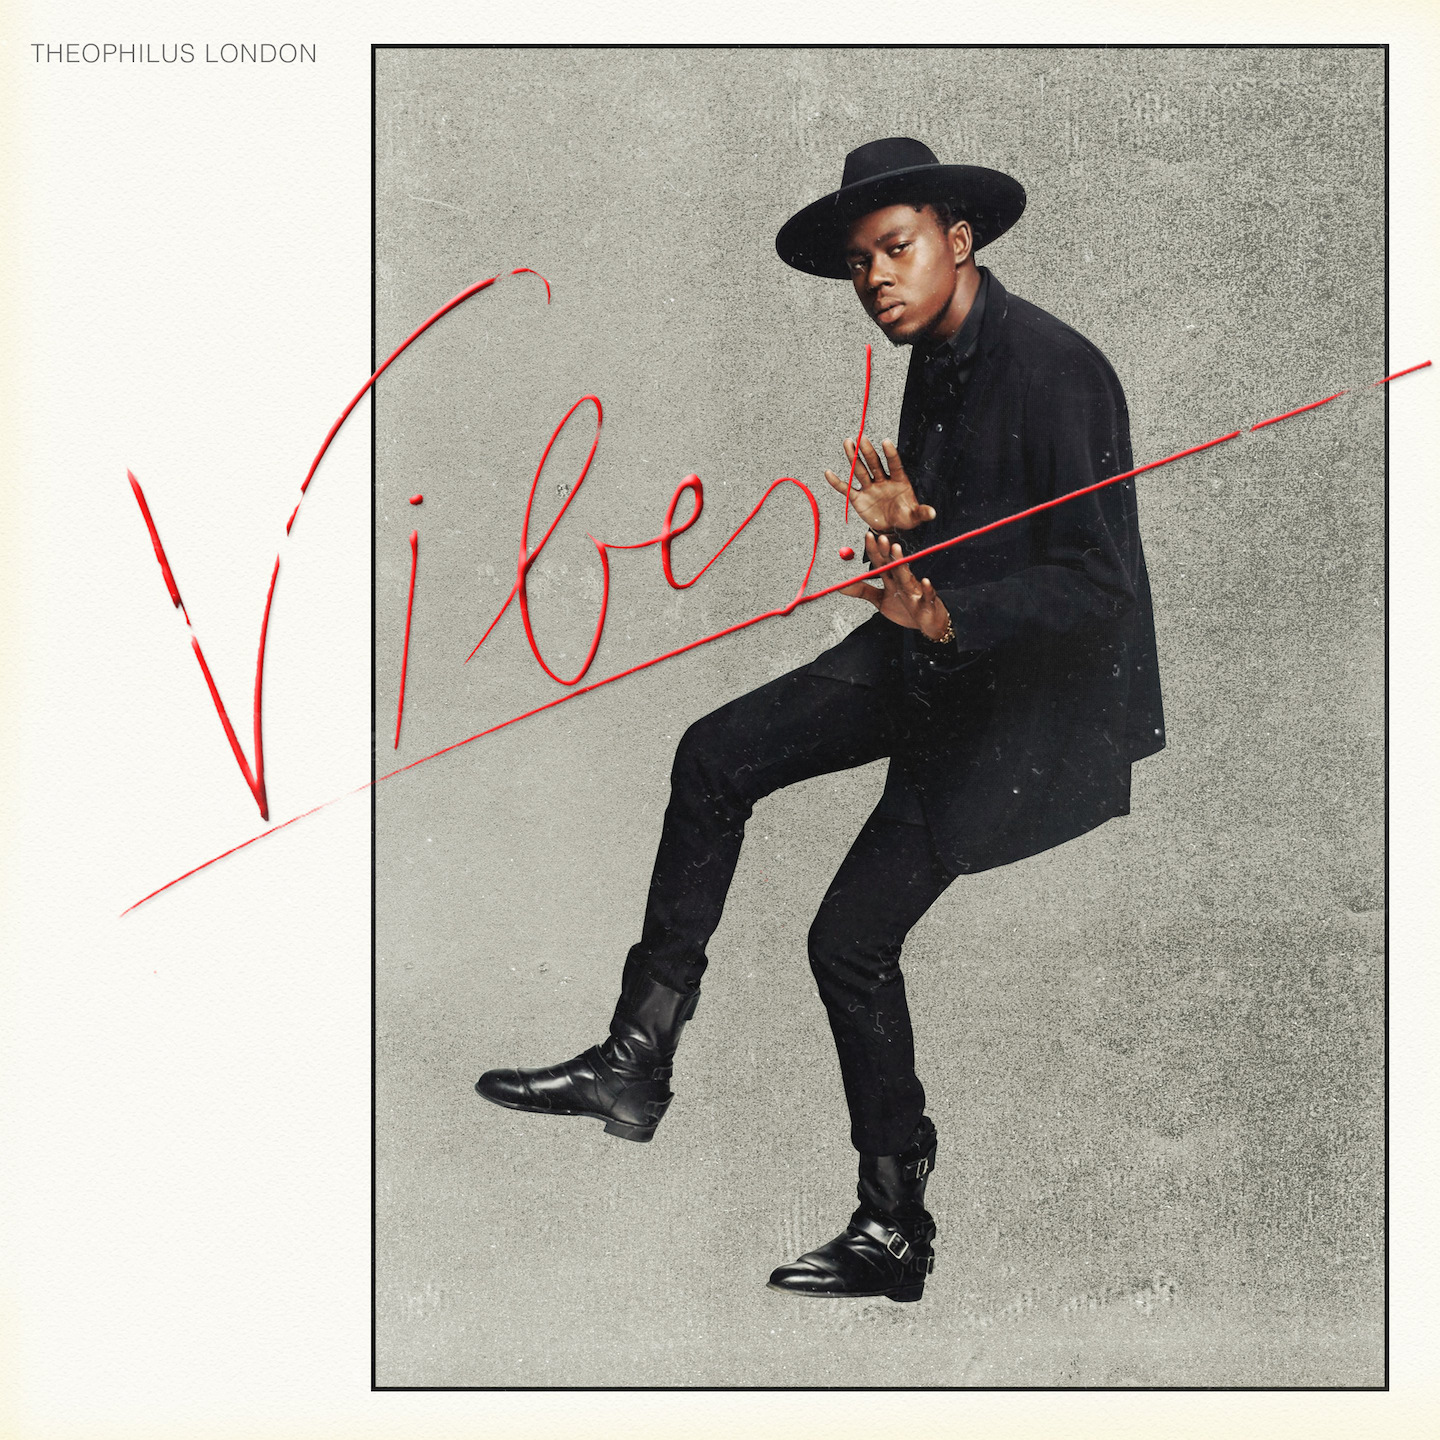 Theophilus London Vibes artwork